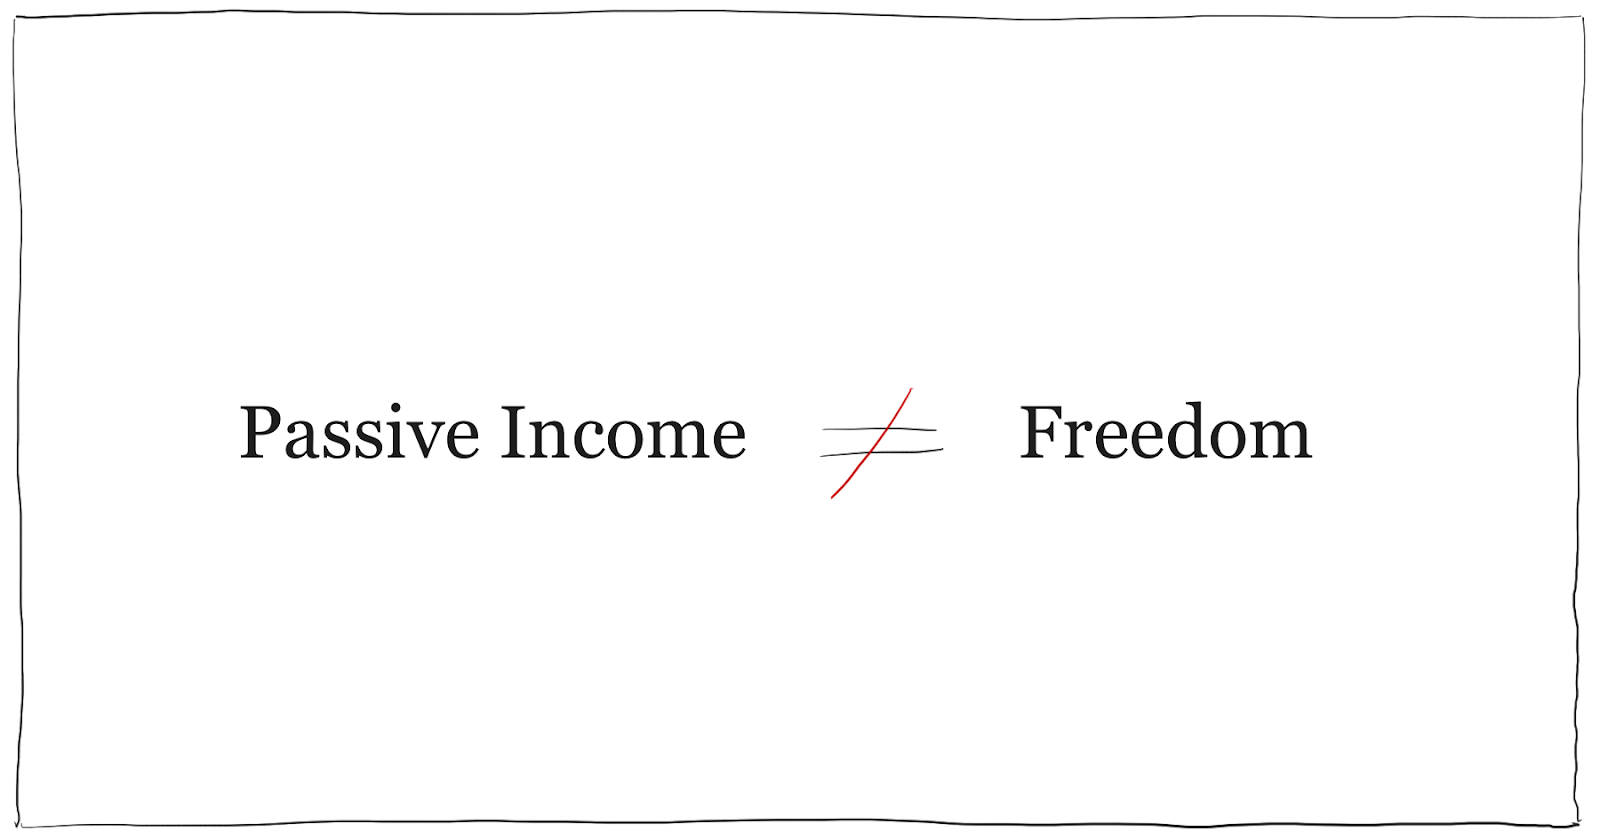 passive income isn't freedom